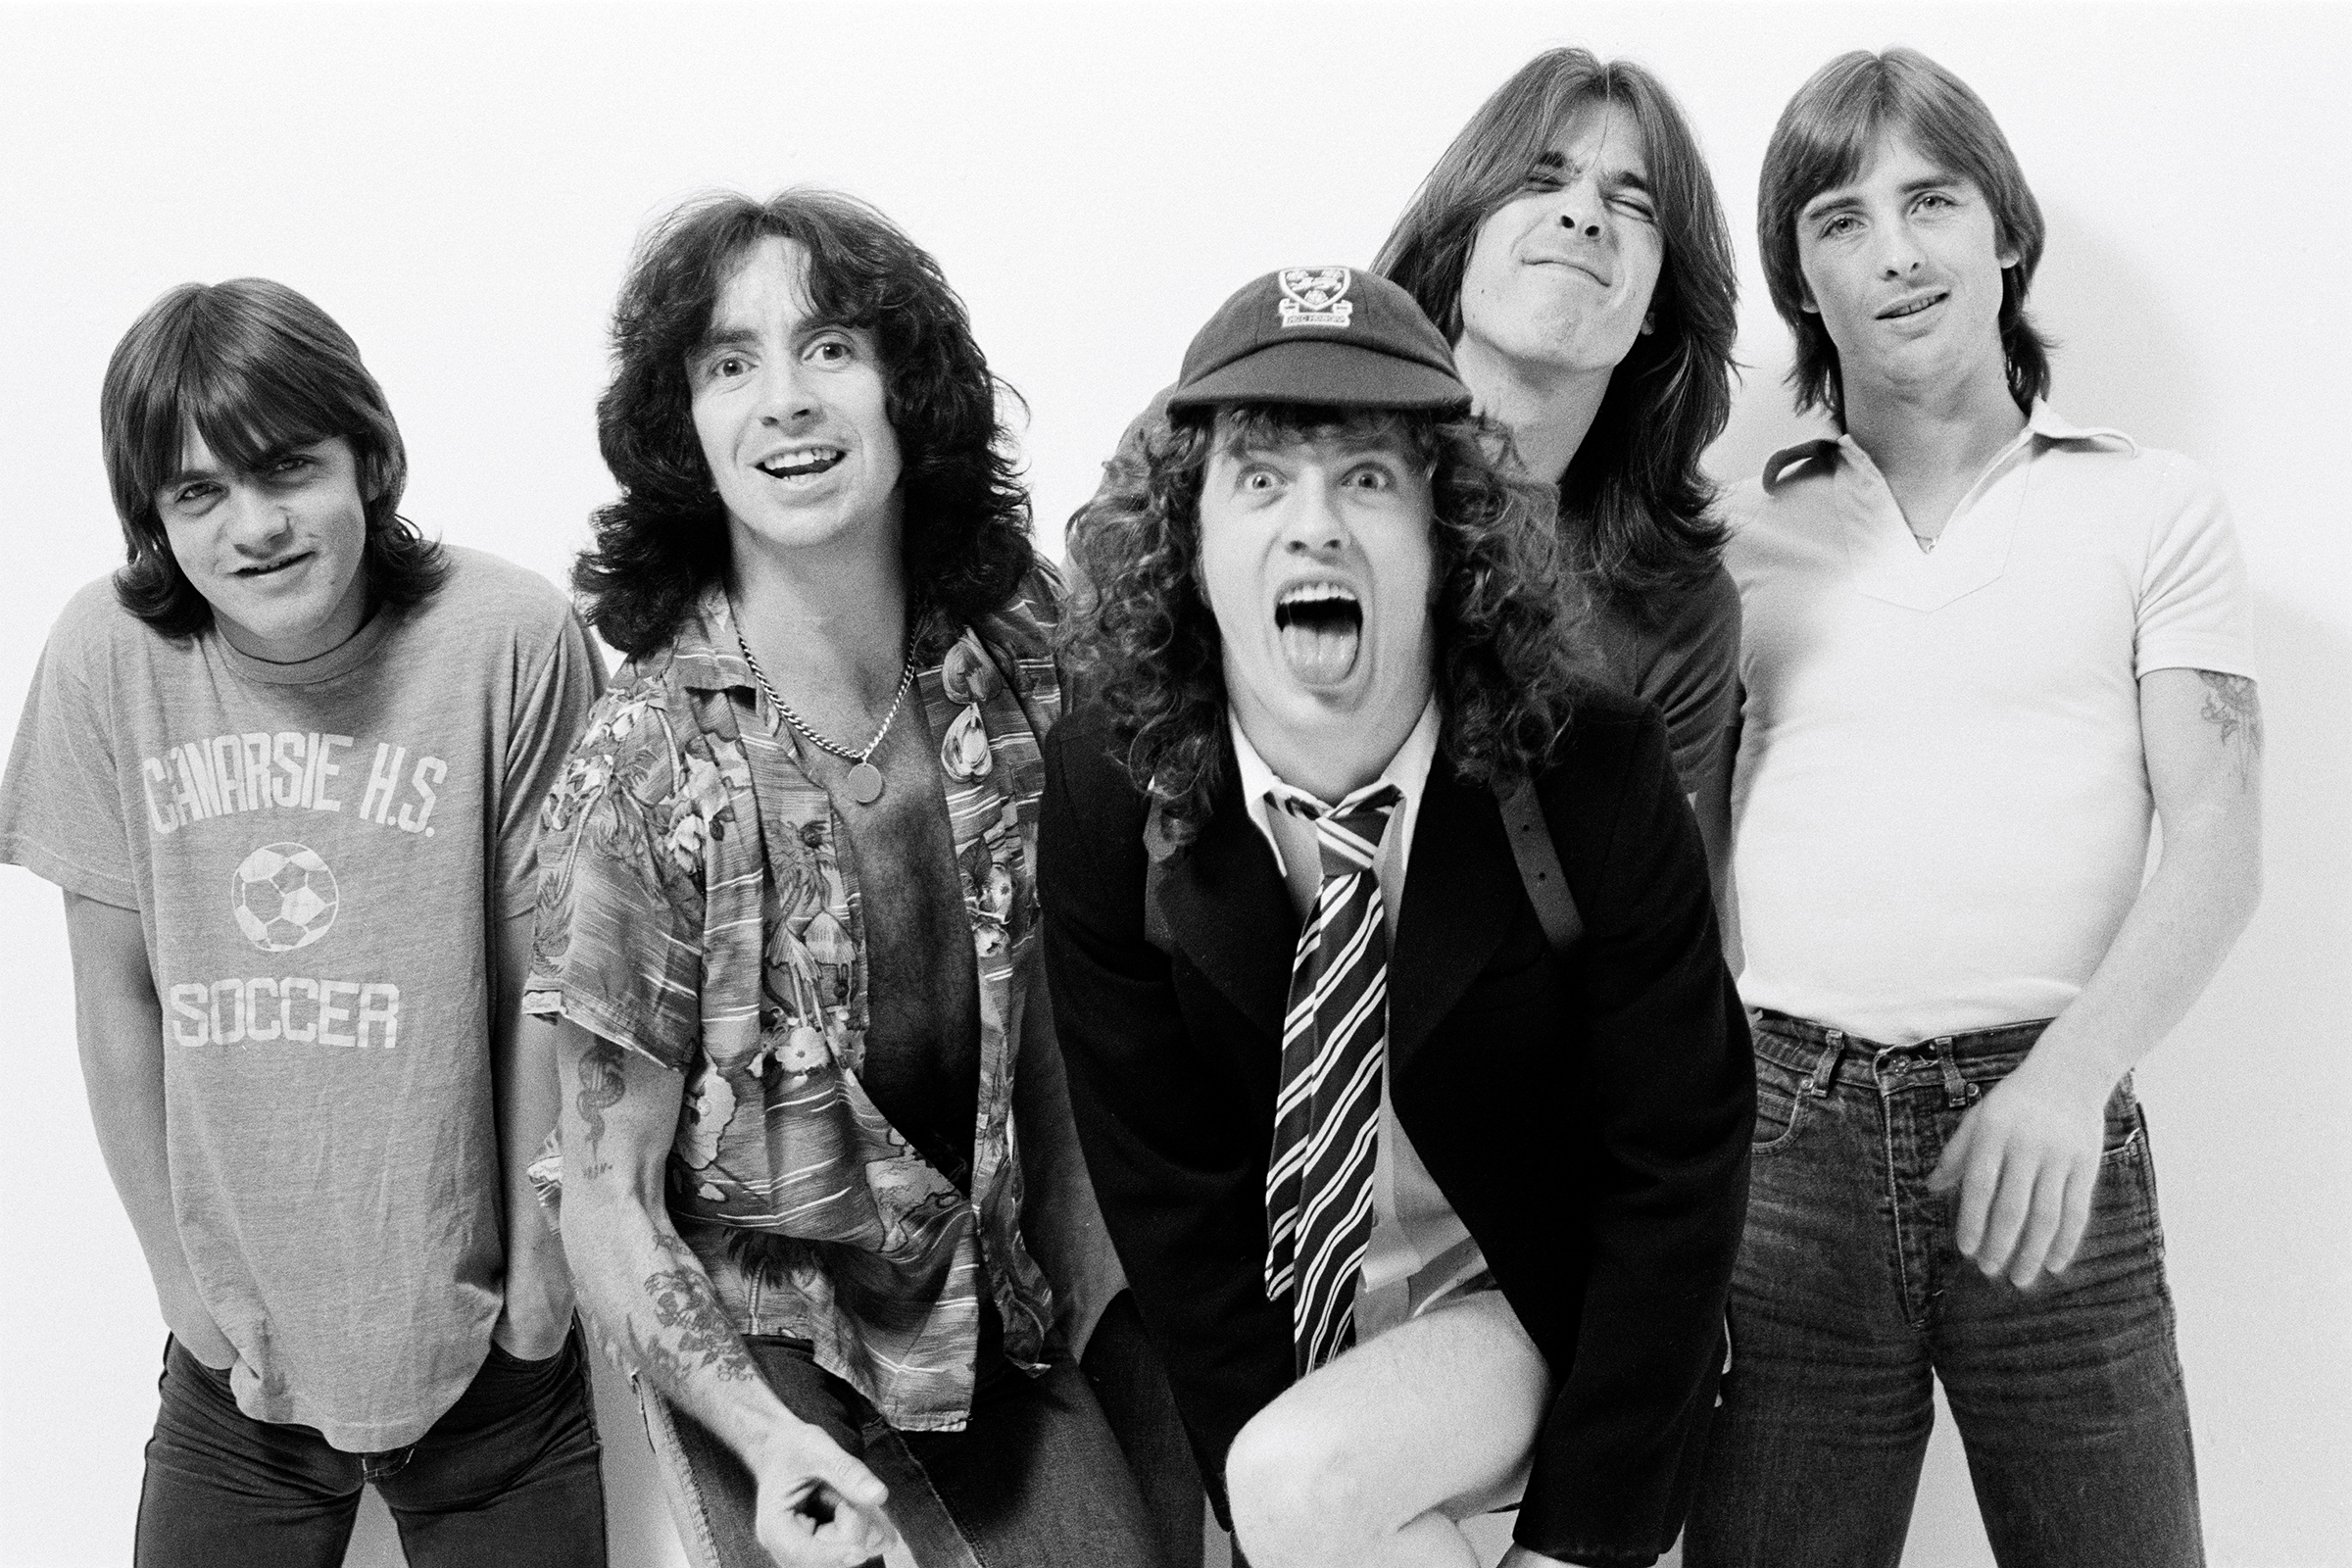 AC/DC Post Vintage 'Highway to Hell' Videos for 40th Anniversary